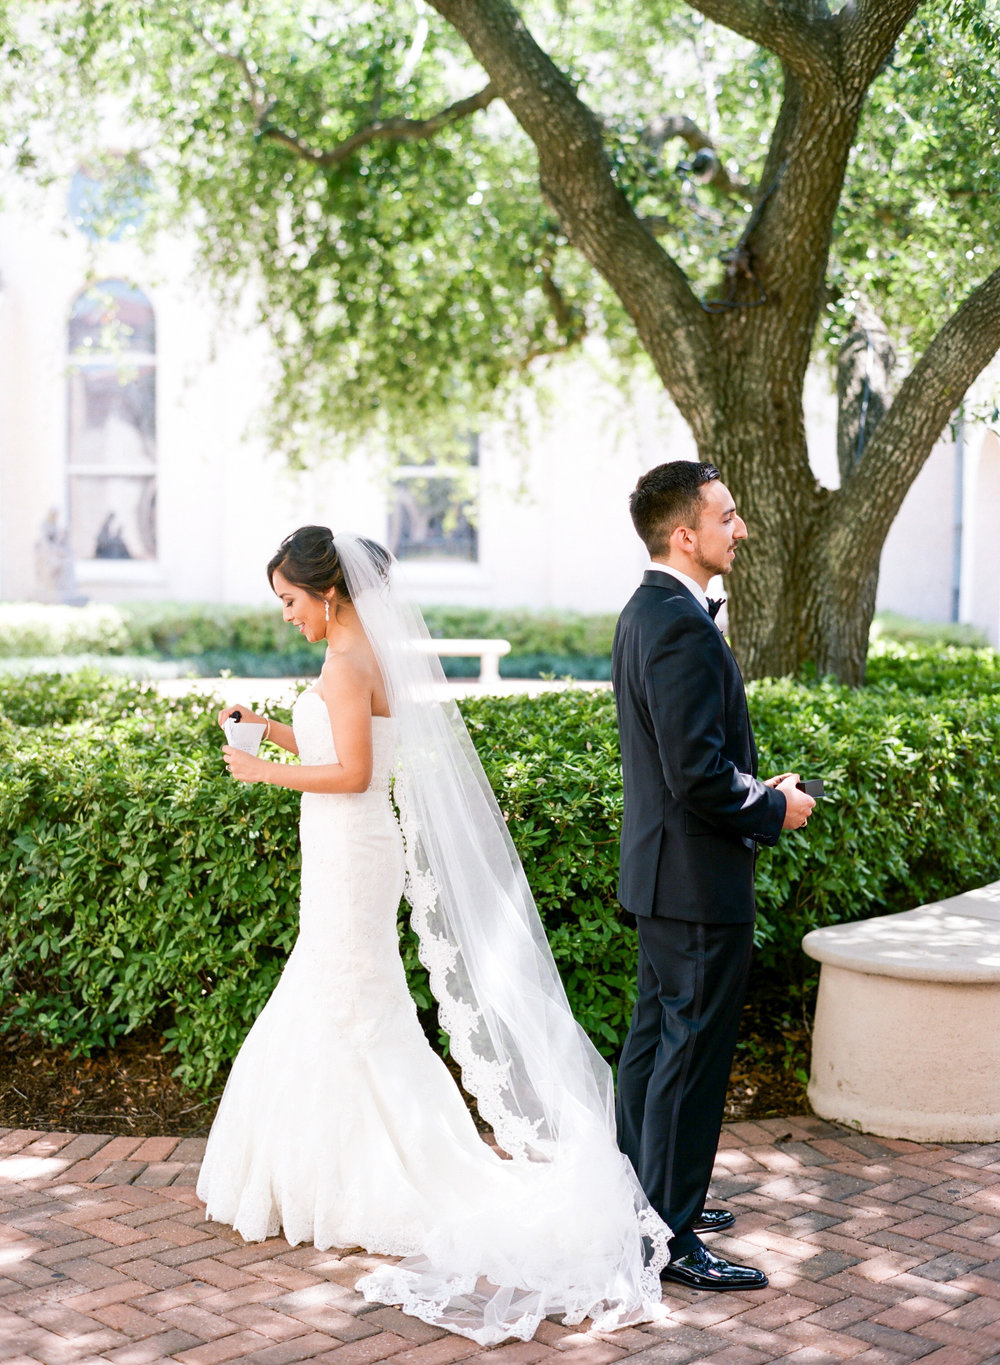 Houston-Wedding-Photography-St.-Anne-Catholic-Church-Houston-Wedding-The-Bell-Tower-on-34th-reception-wedding-film-11.jpg